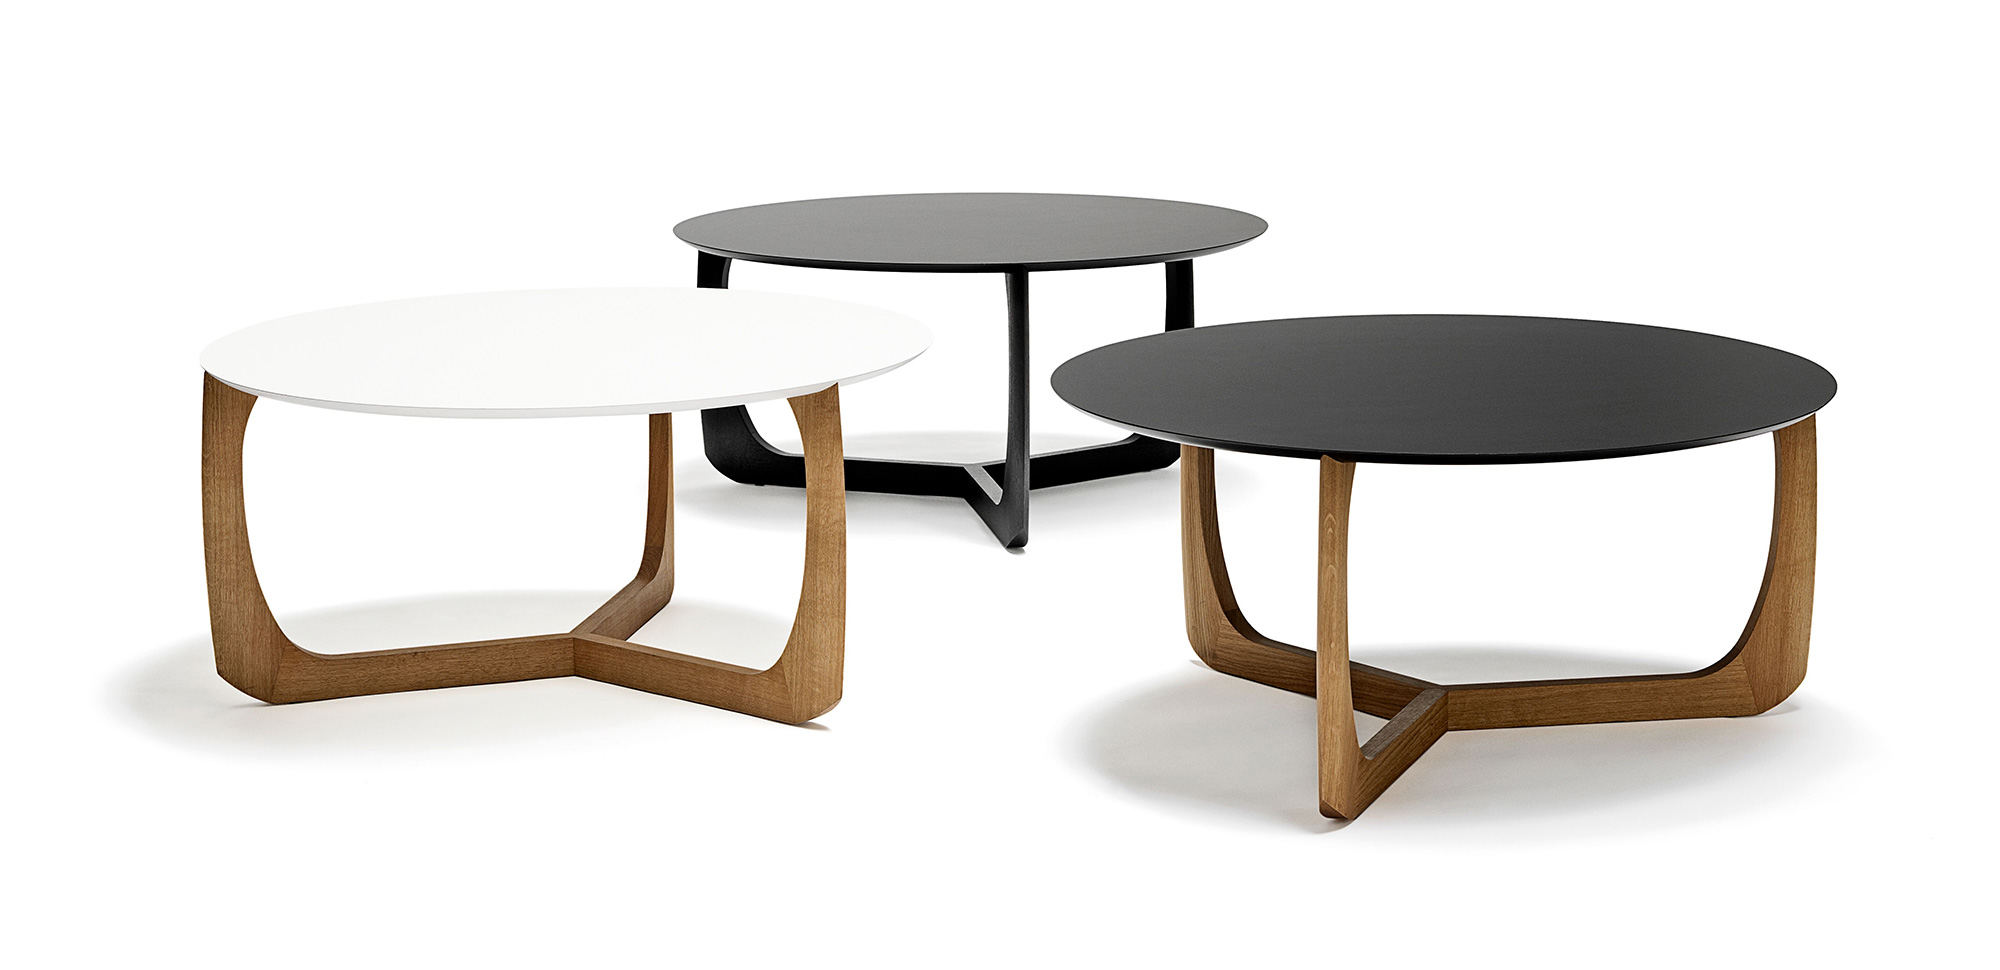 tout neuf f70a8 34538 Table basse scandinave pied noir - pearlfection.fr